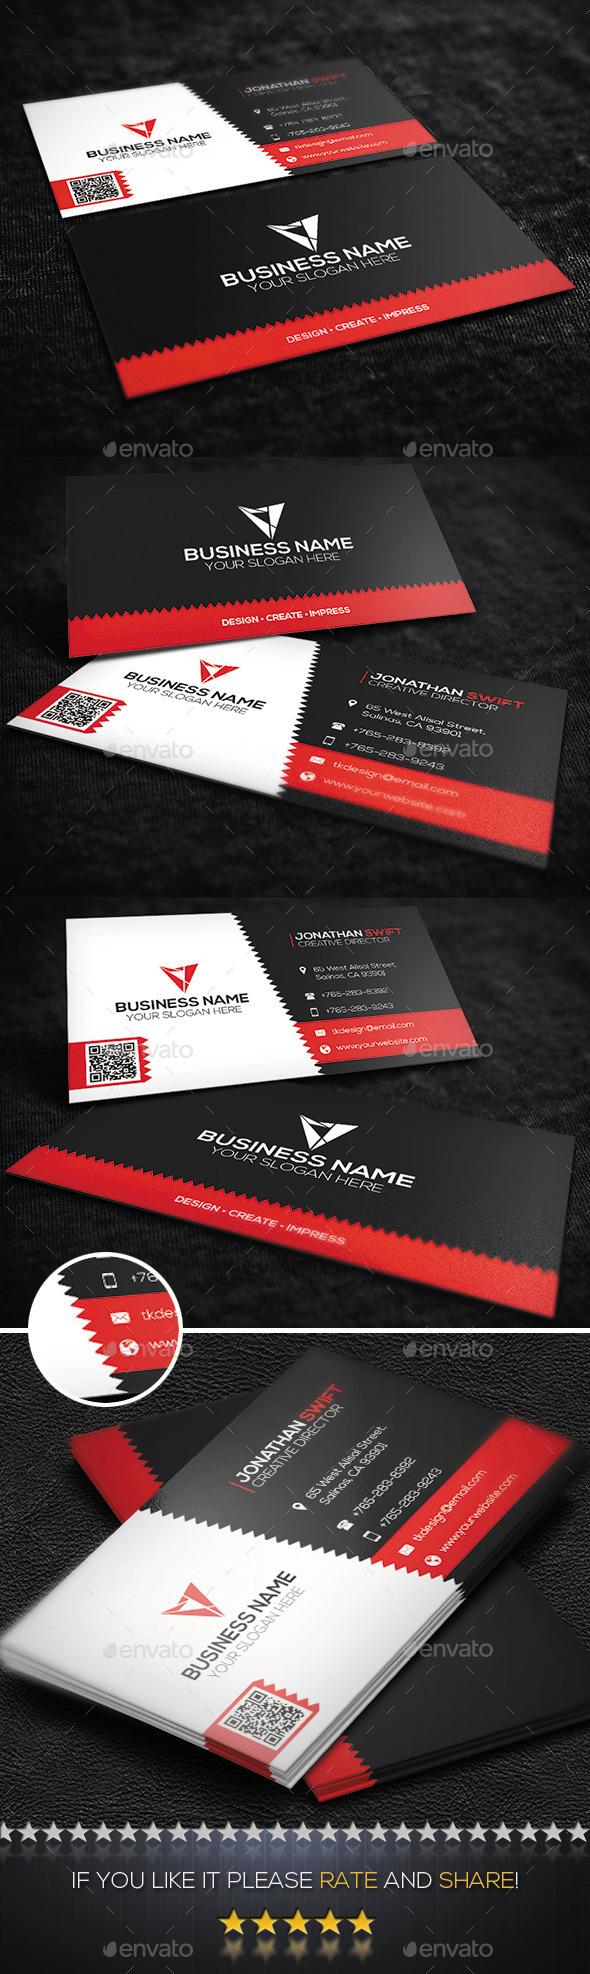 GraphicRiver Corporate Business Card No.11 9724771